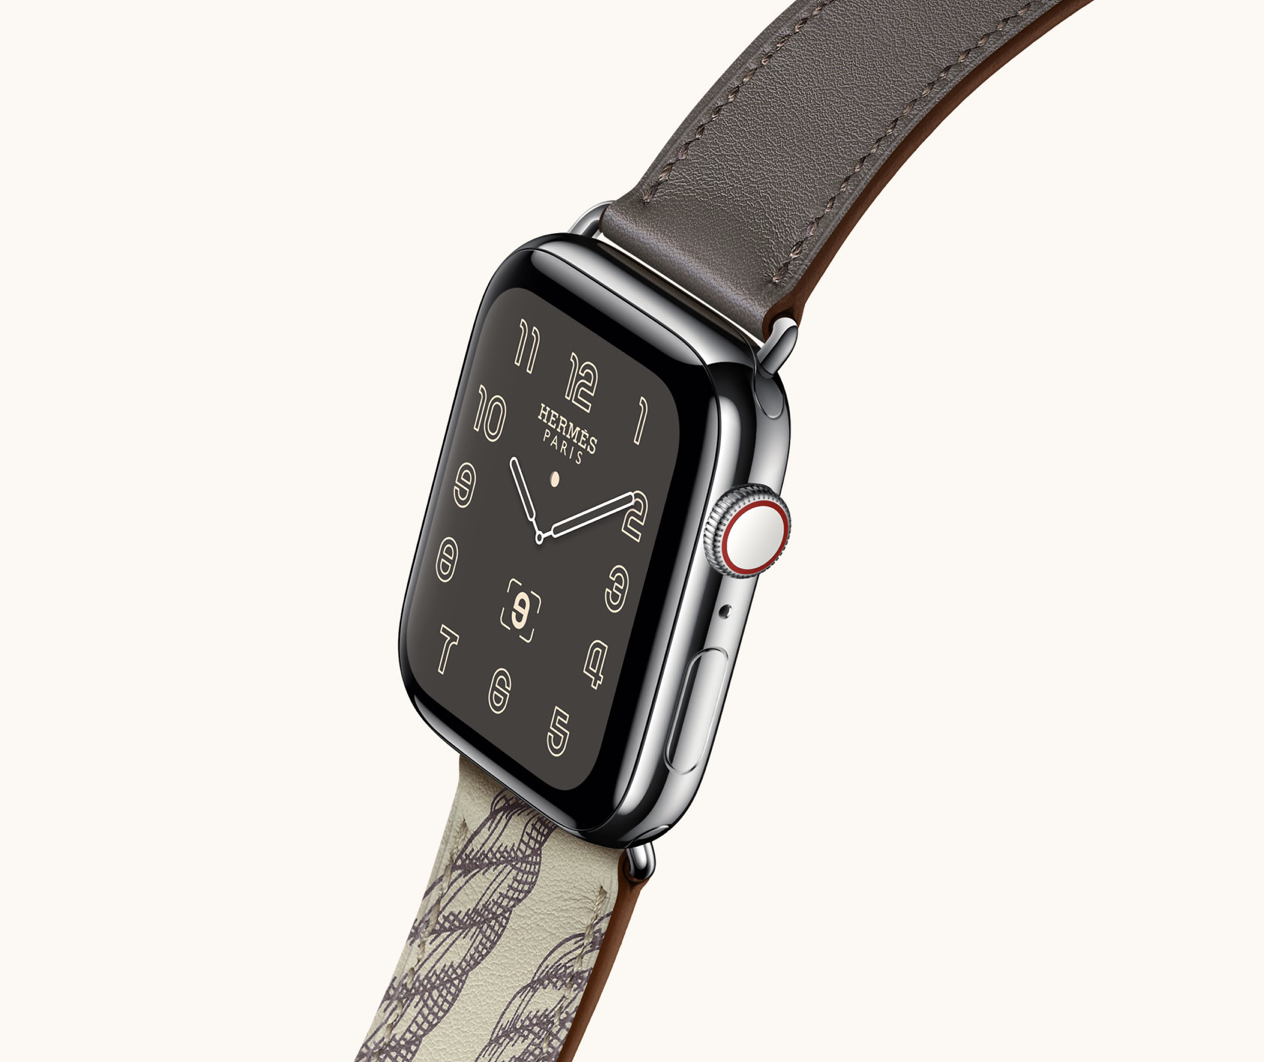 Despite the attractions of long life and appreciation in value in traditional watches and cameras, many previous enthusiases are seduced by technoligy. It offers more functionality at the cost of rapid obsolescence. Even then, some will pay extra for luxury versions such as this Hermes Apple Watch Series 5. It is unlikely to be a good investment.